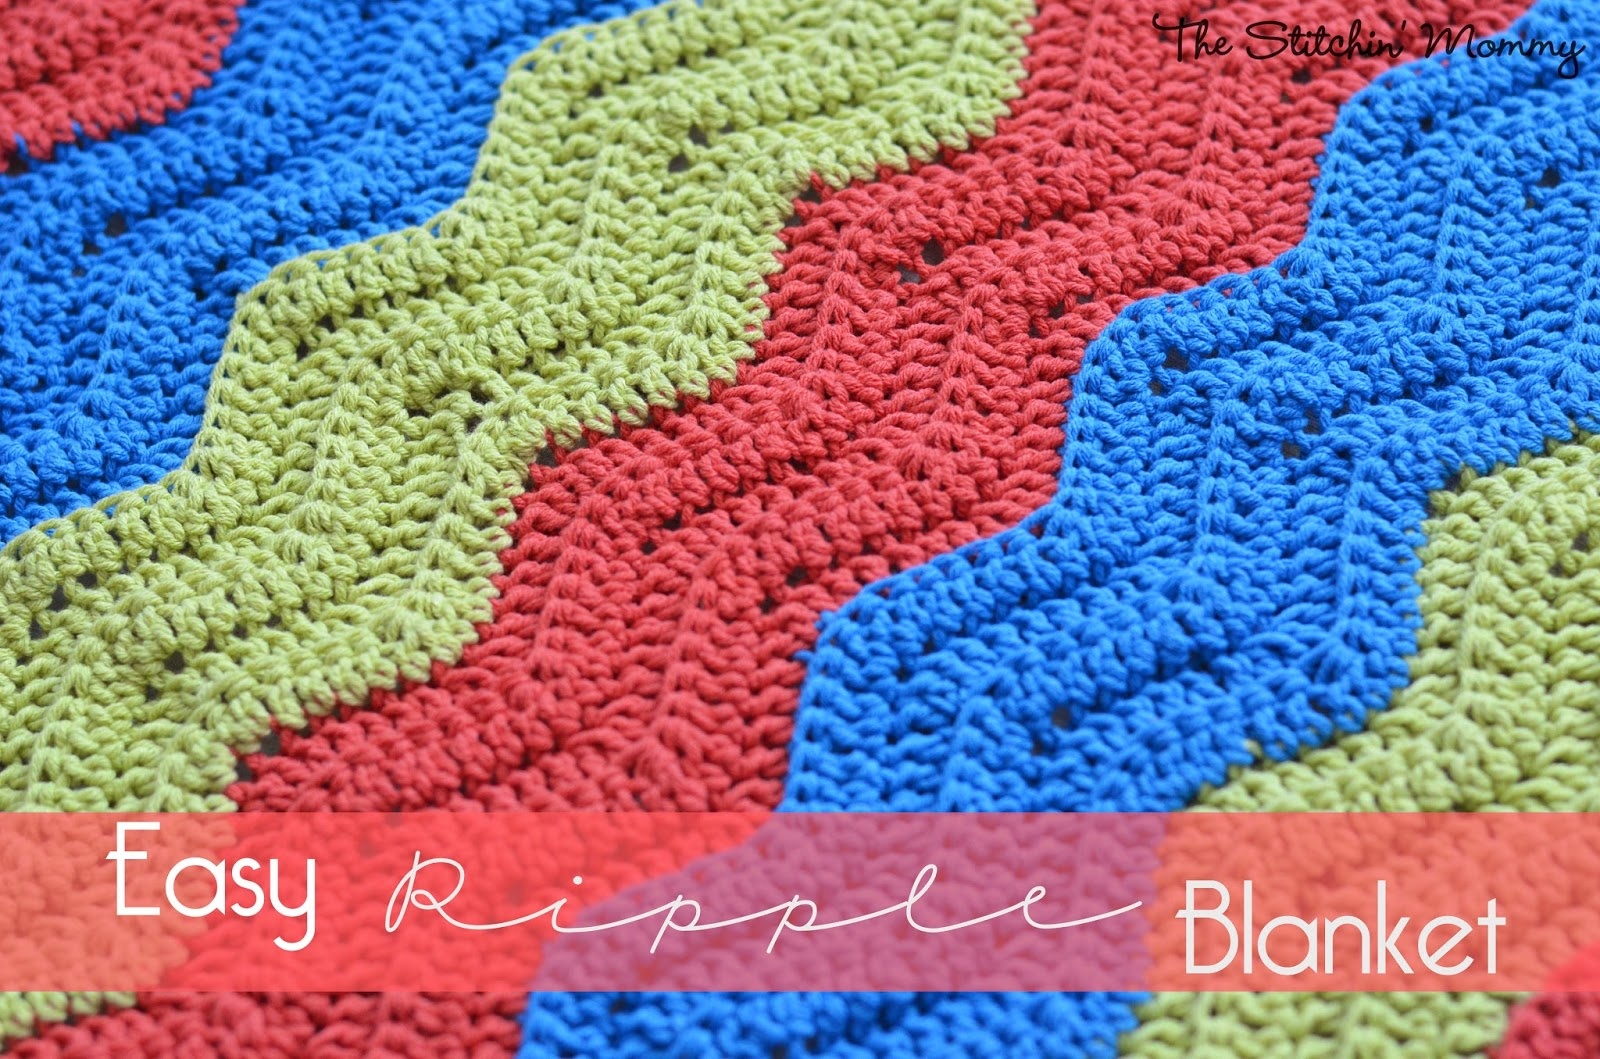 Ripple Afghan Crochet Pattern Awesome Ideas